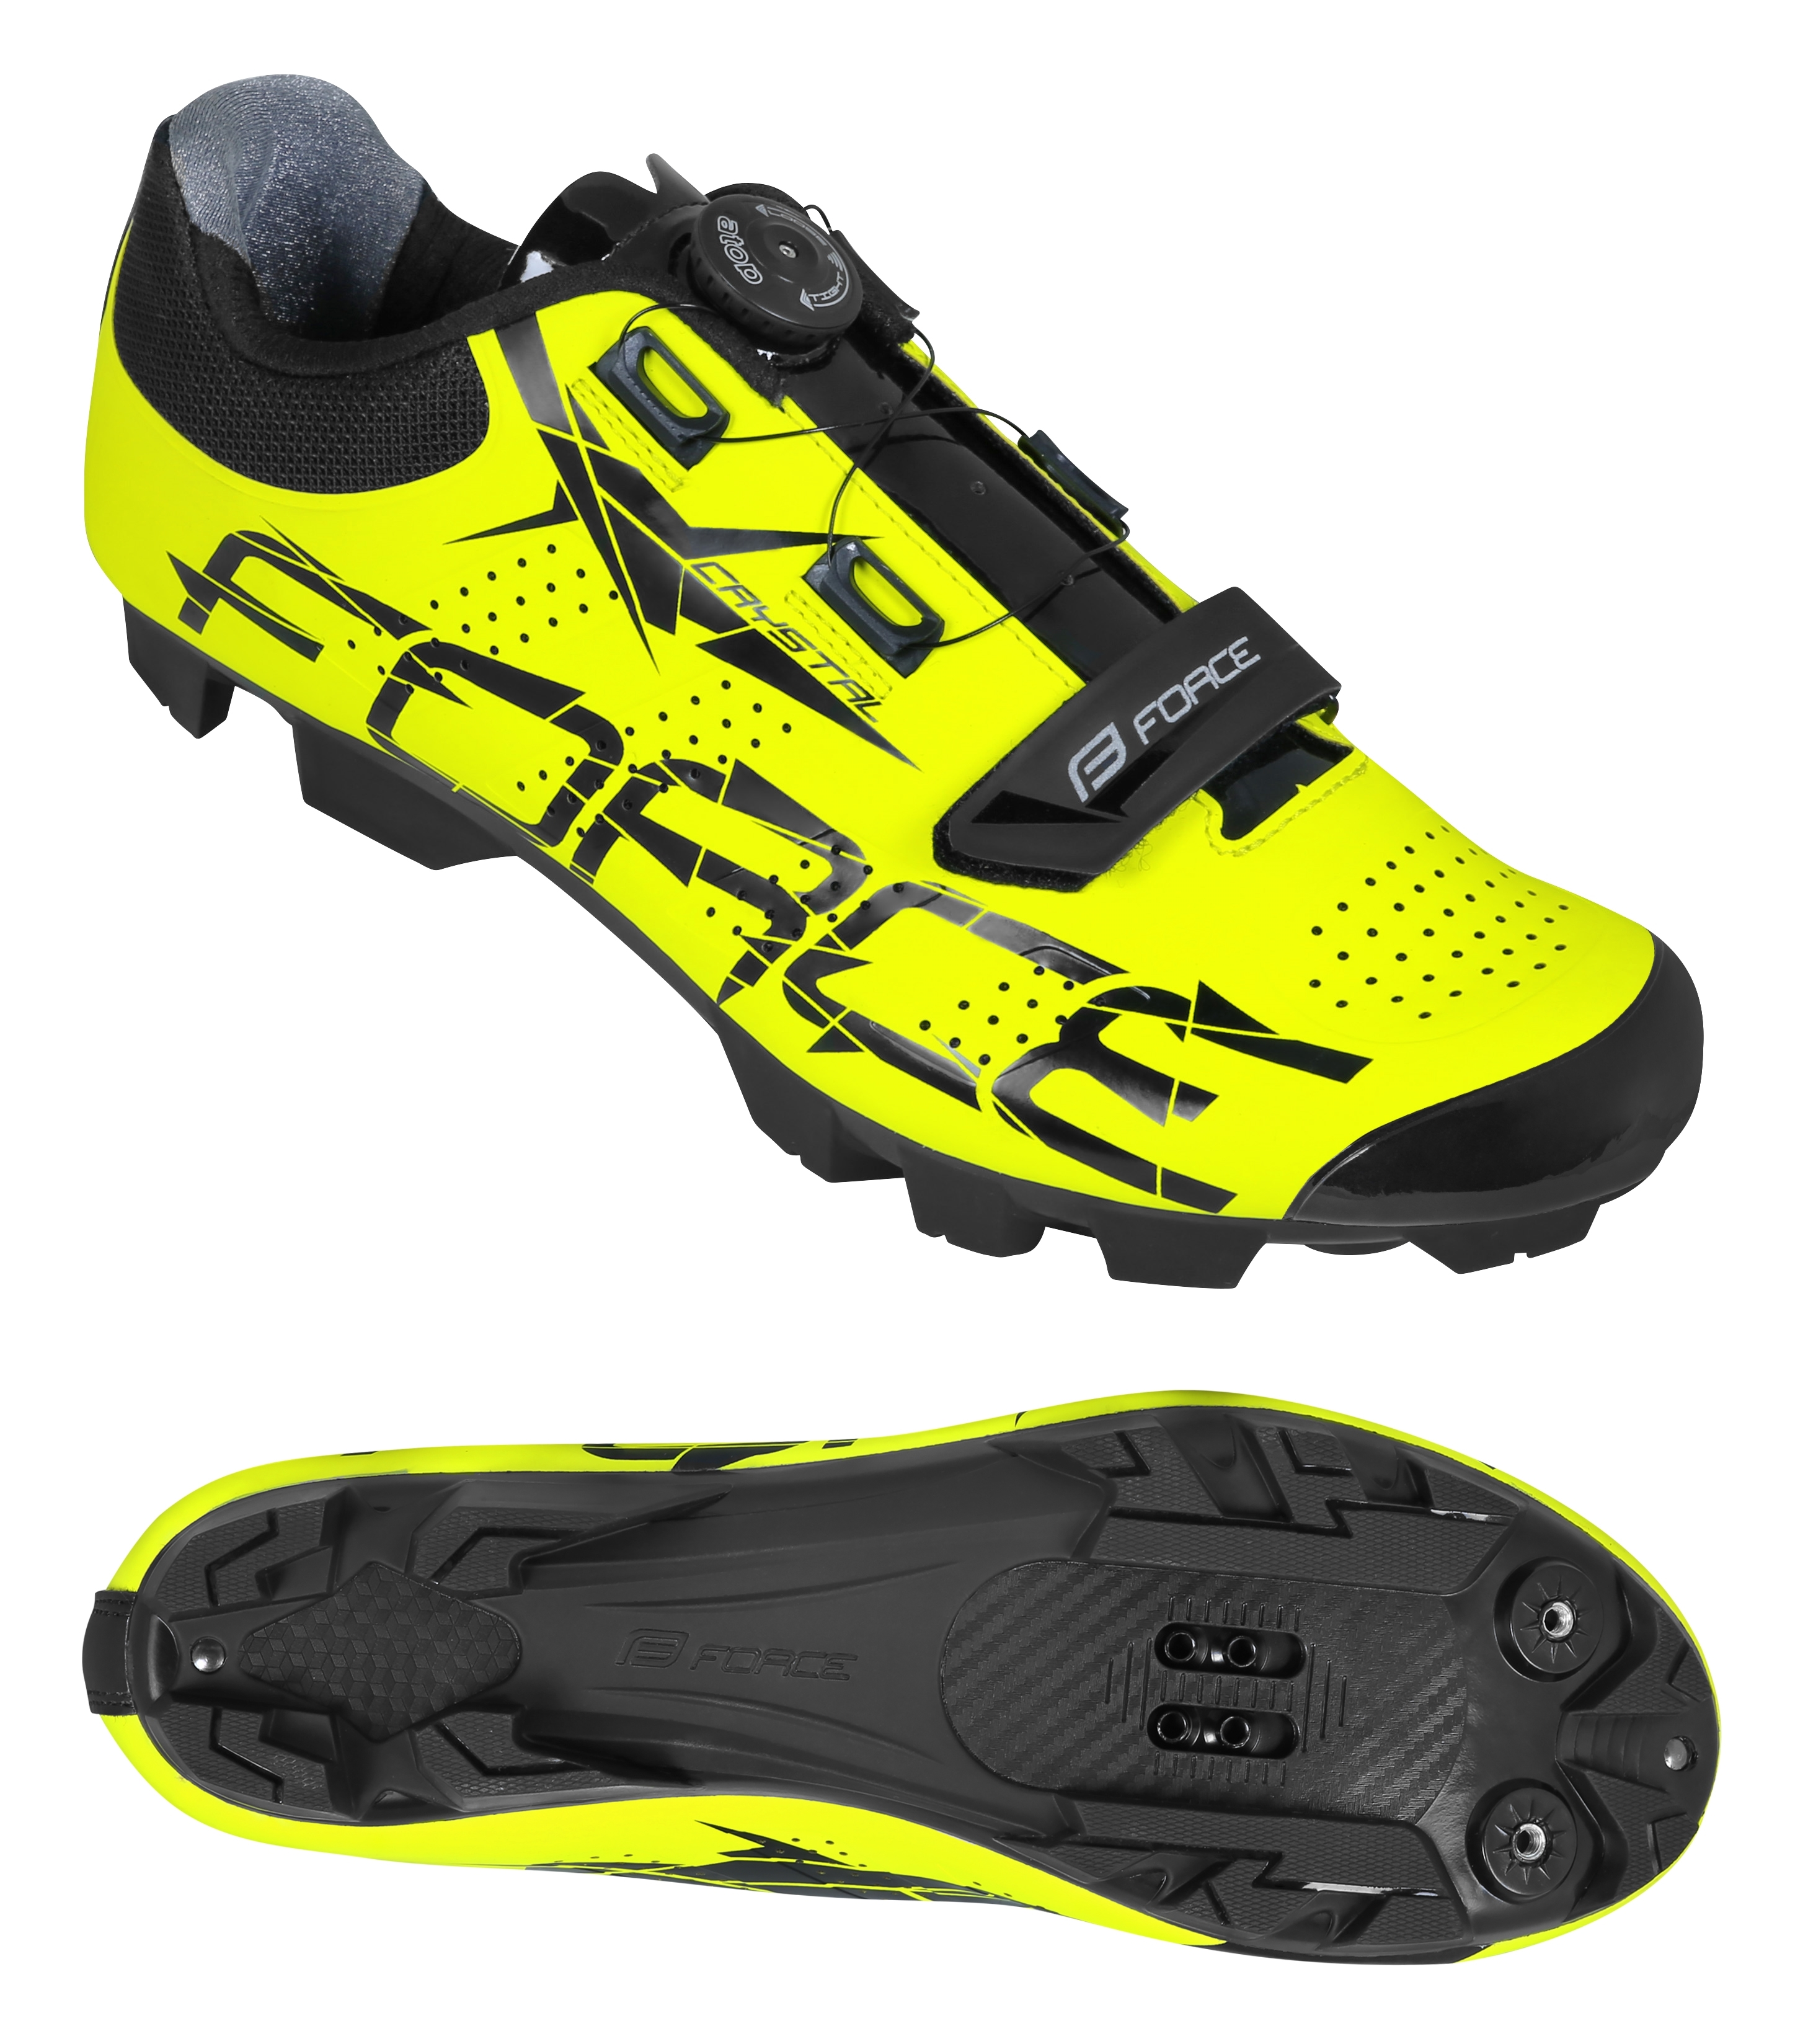 Tretry FORCE MTB CRYSTAL vel. 36, fluo